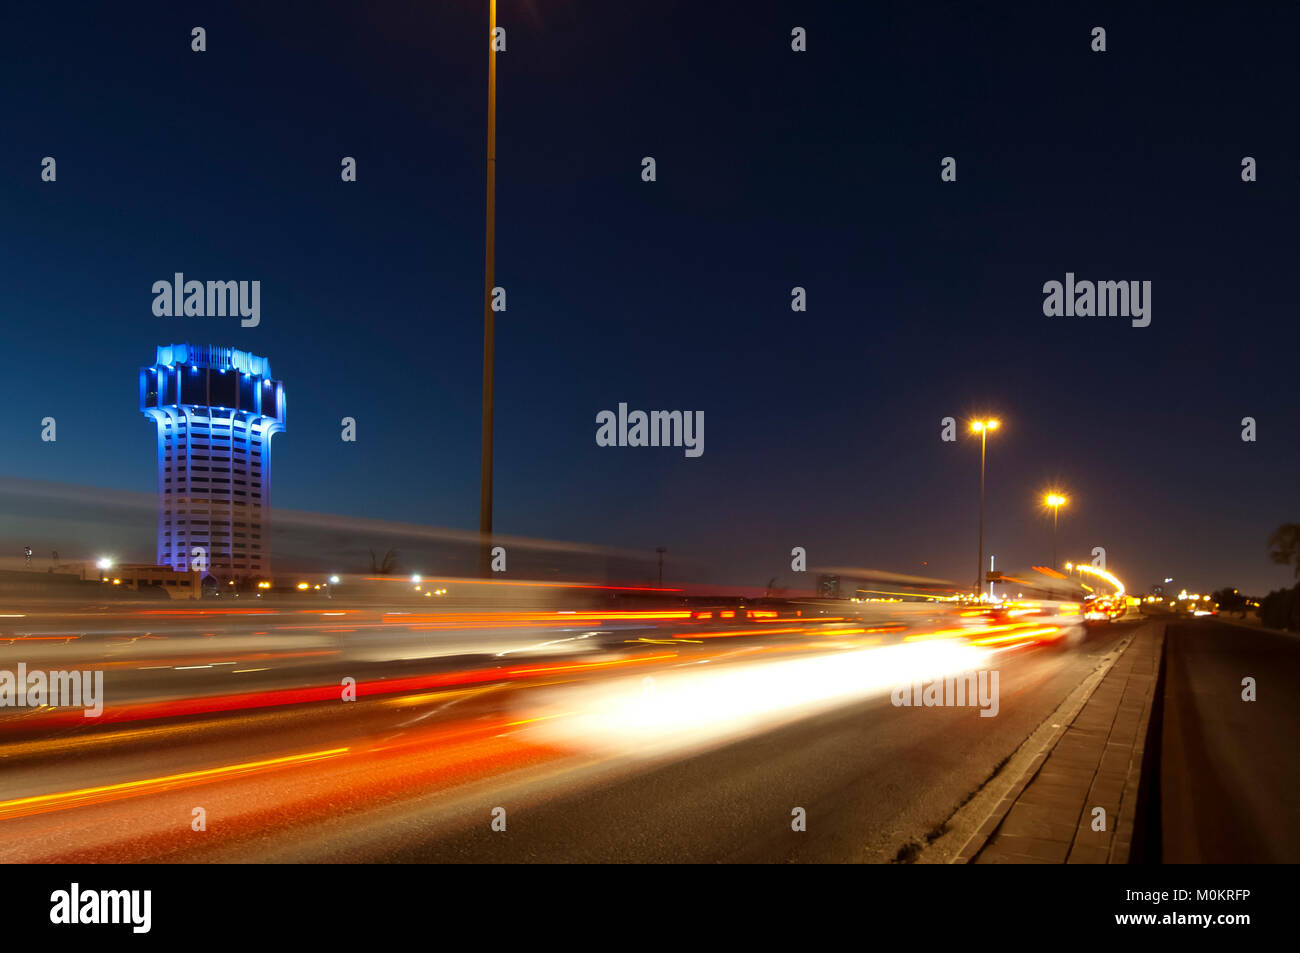 Jeddah water tower at night, with car lights motion on the street